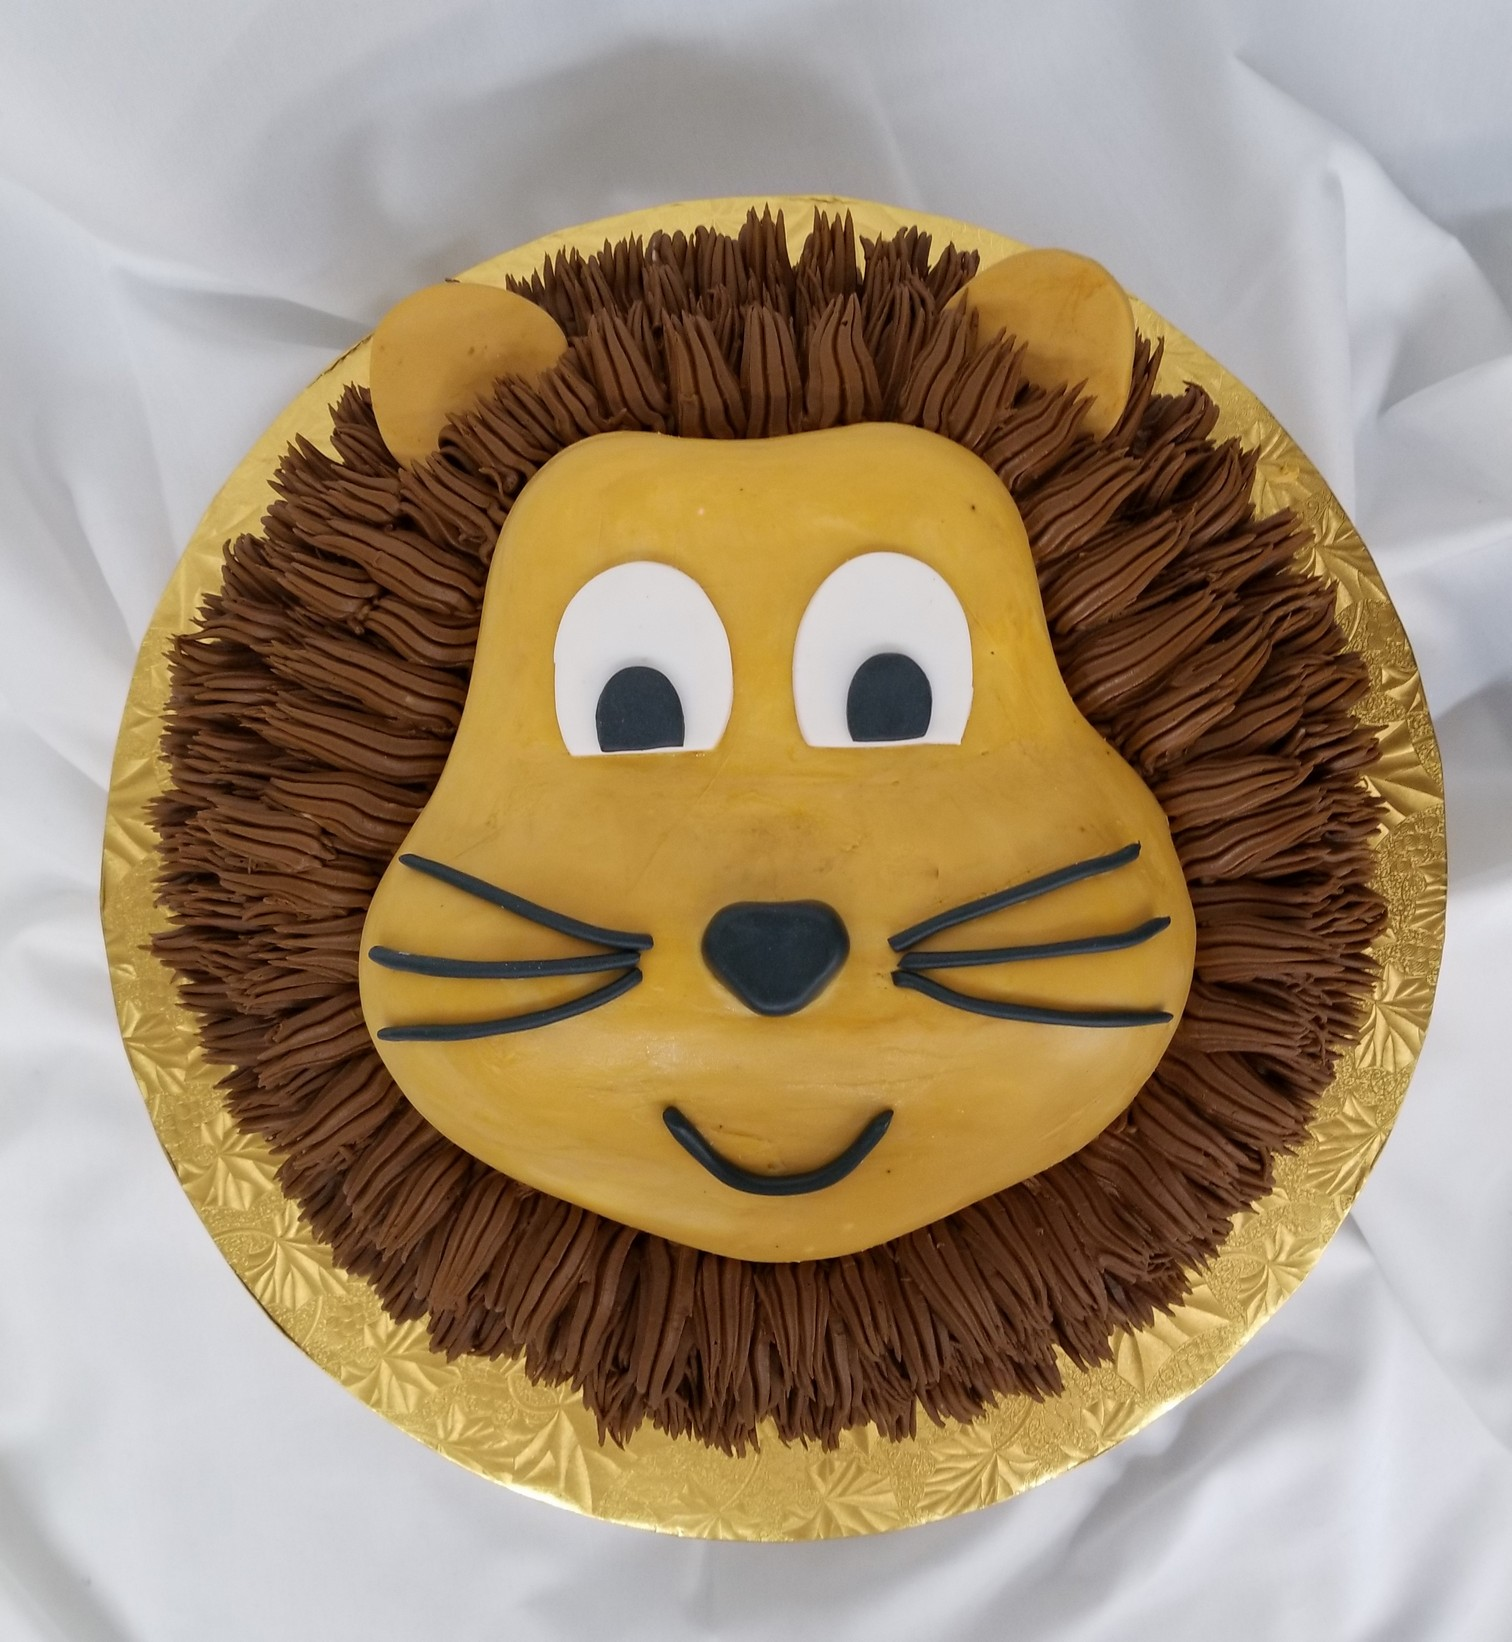 Lions Head celebration cake from Cinottis Bakery